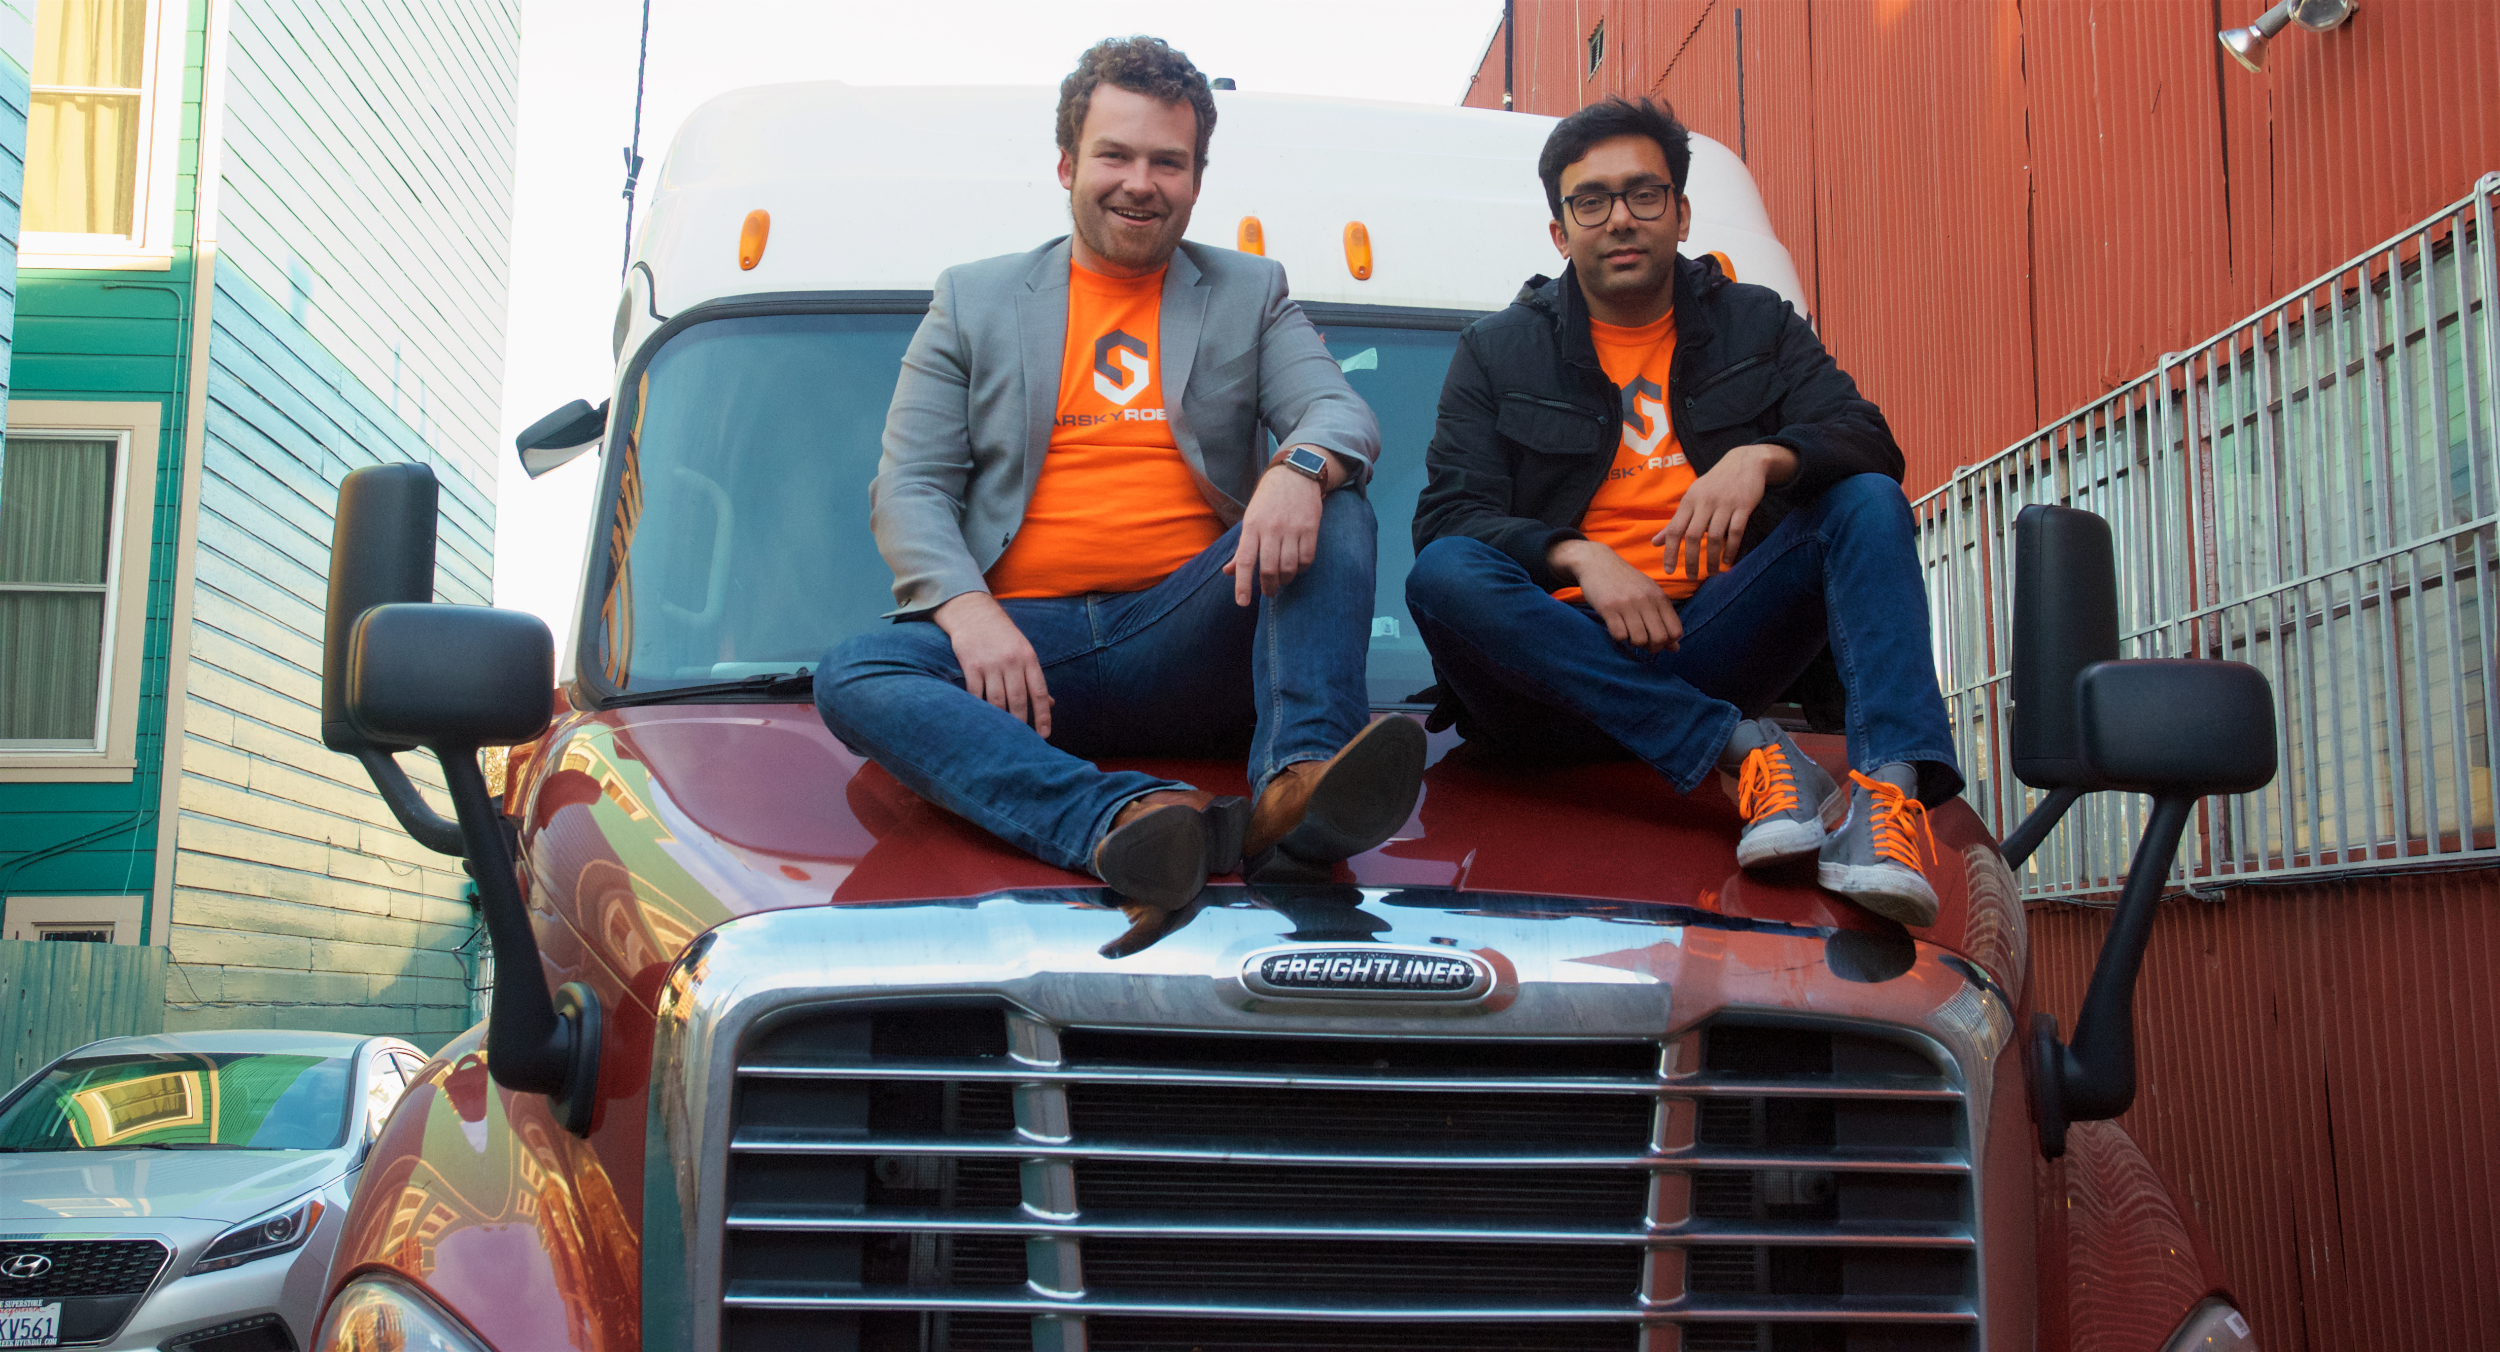 Starsky Robotics co-founders Stefan Seltz Axmacher and Kartik Tiwari.